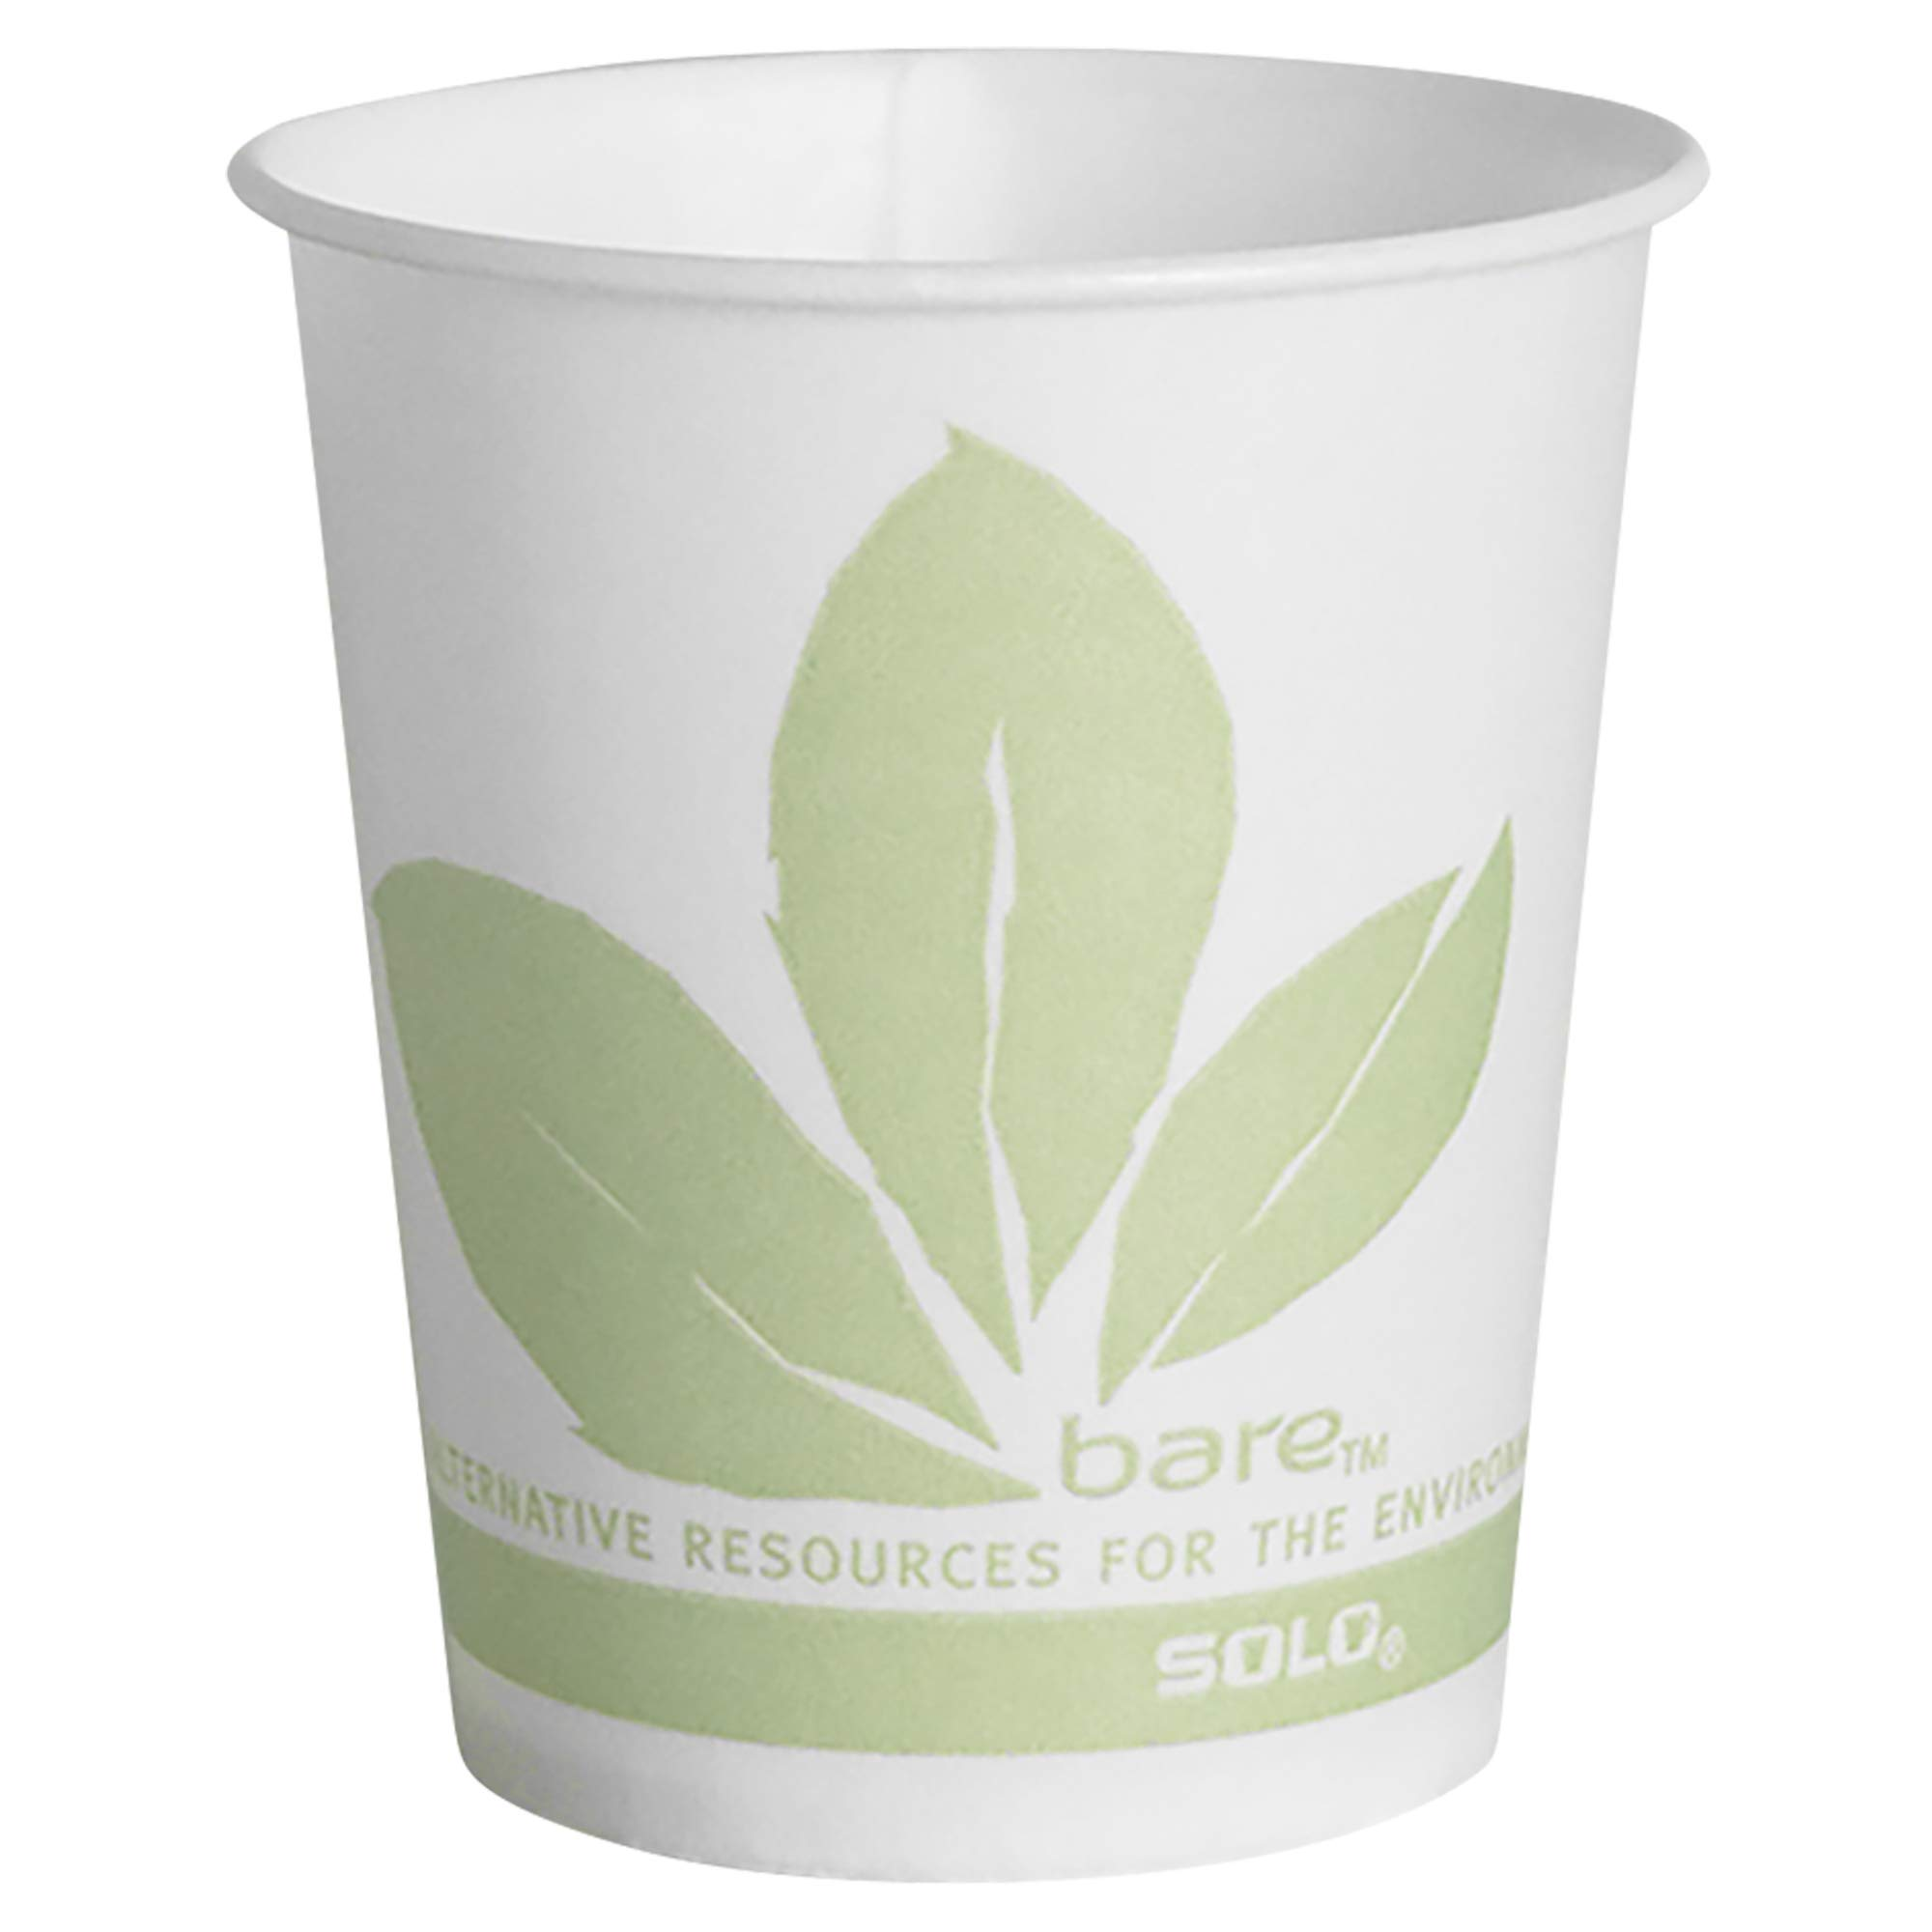 Solo R53BB-JD110 5 oz Bare Waxed Paper Cold Cup (Case of 3000)